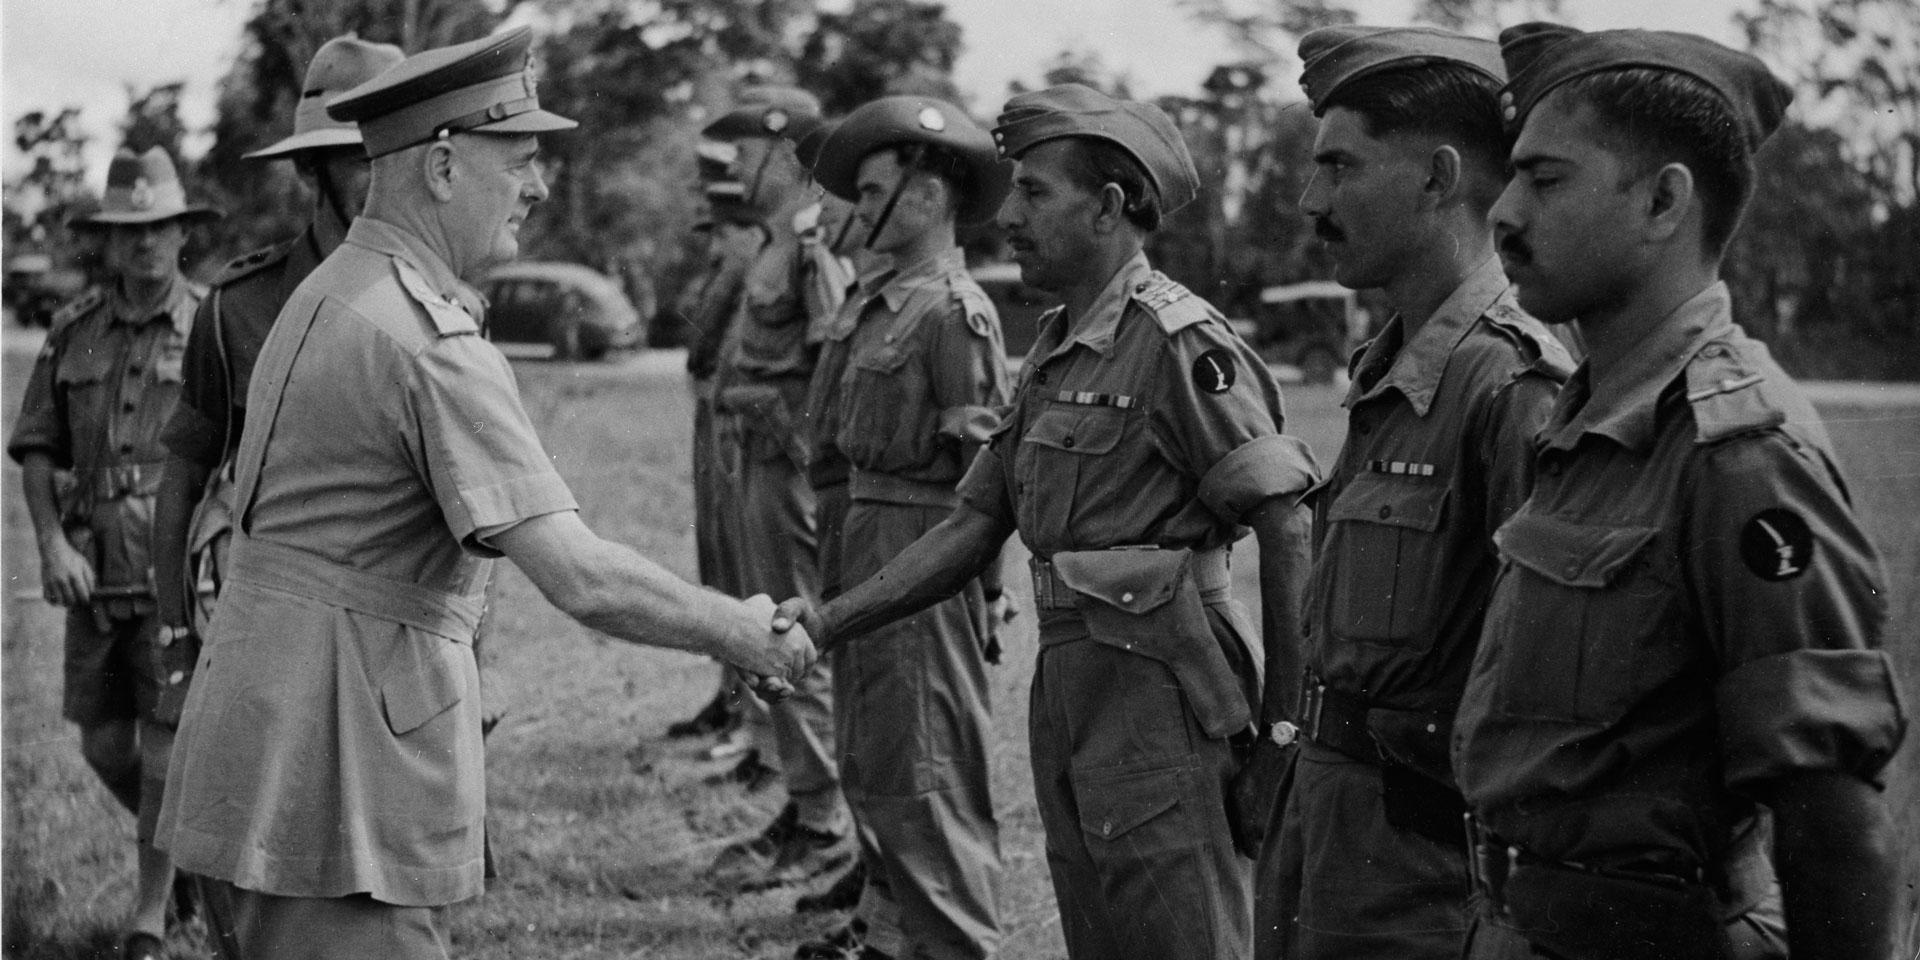 General Sir Archibald Wavell, Commander-in-Chief India and Commander of ABDA, greets men of 20th Indian Division, c1942